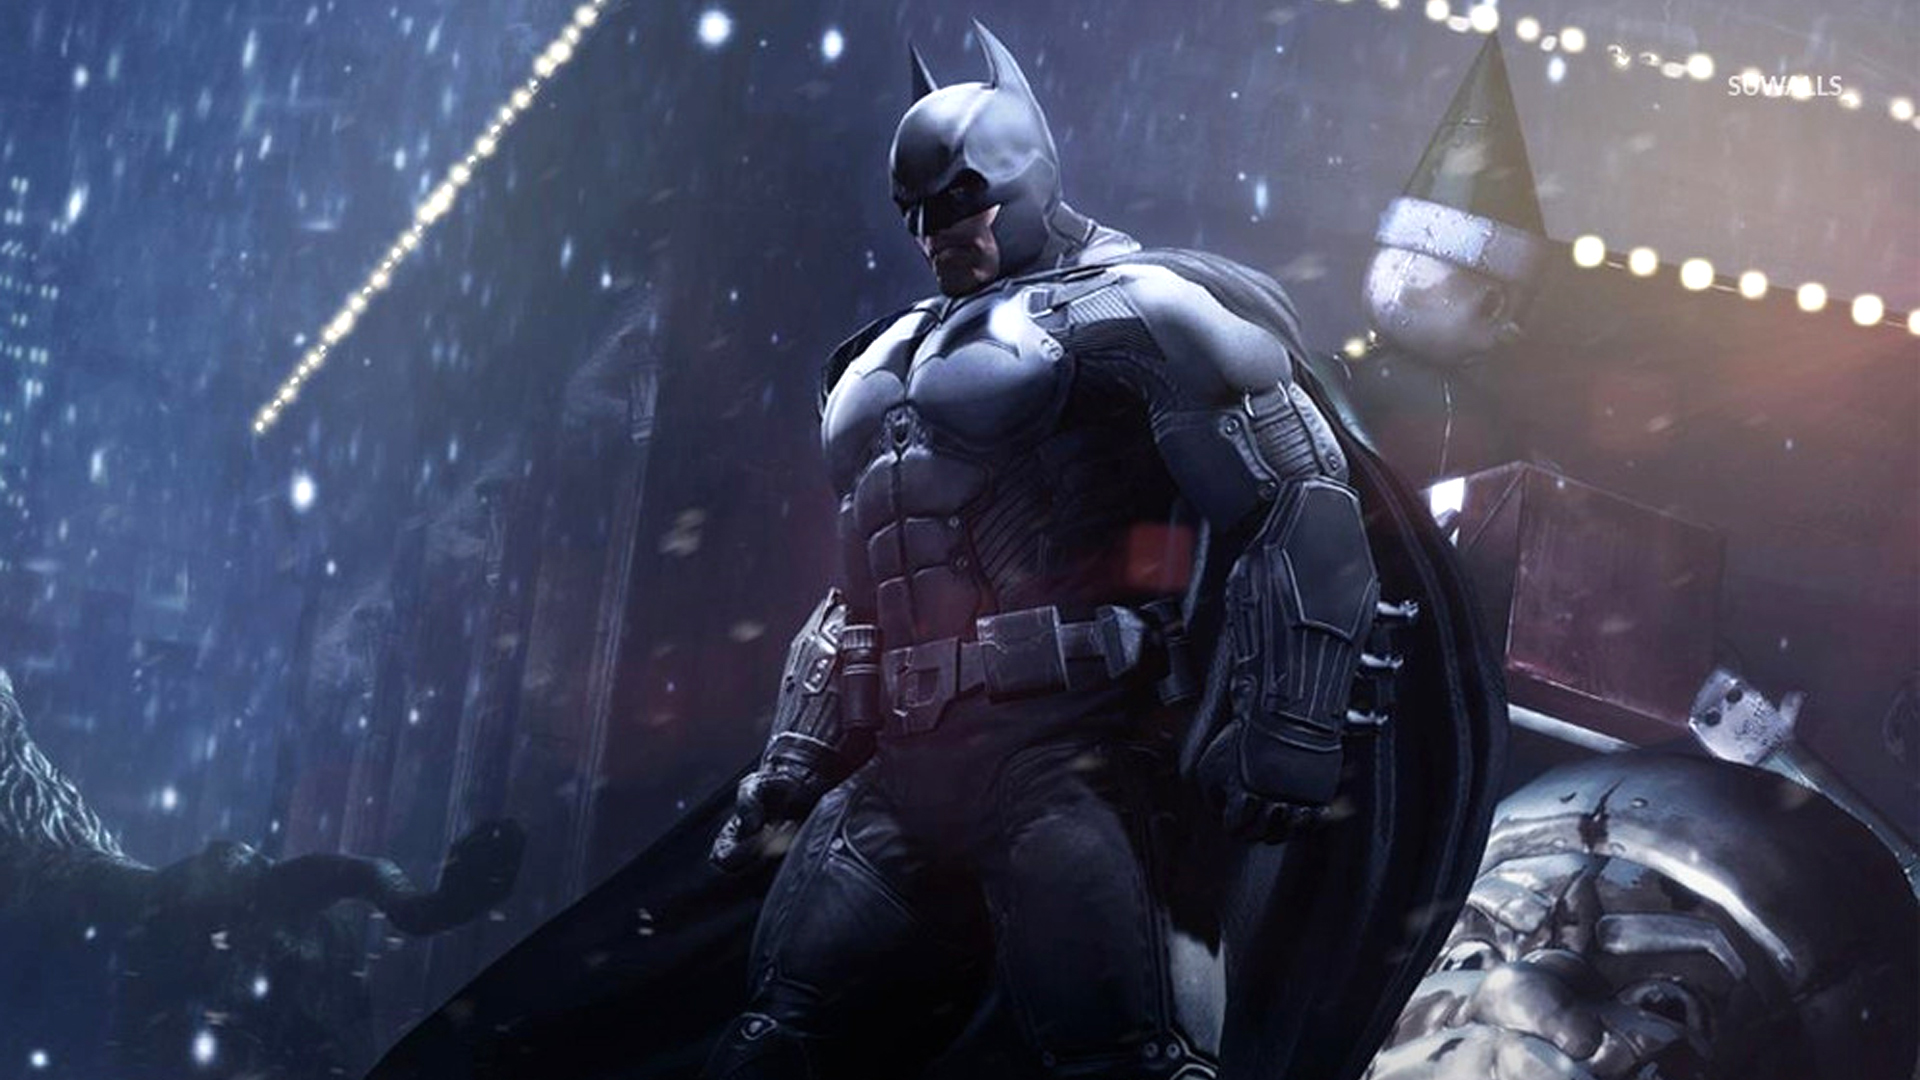 New Upcoming Batman Arkham Game Coming Sooner Than Expected